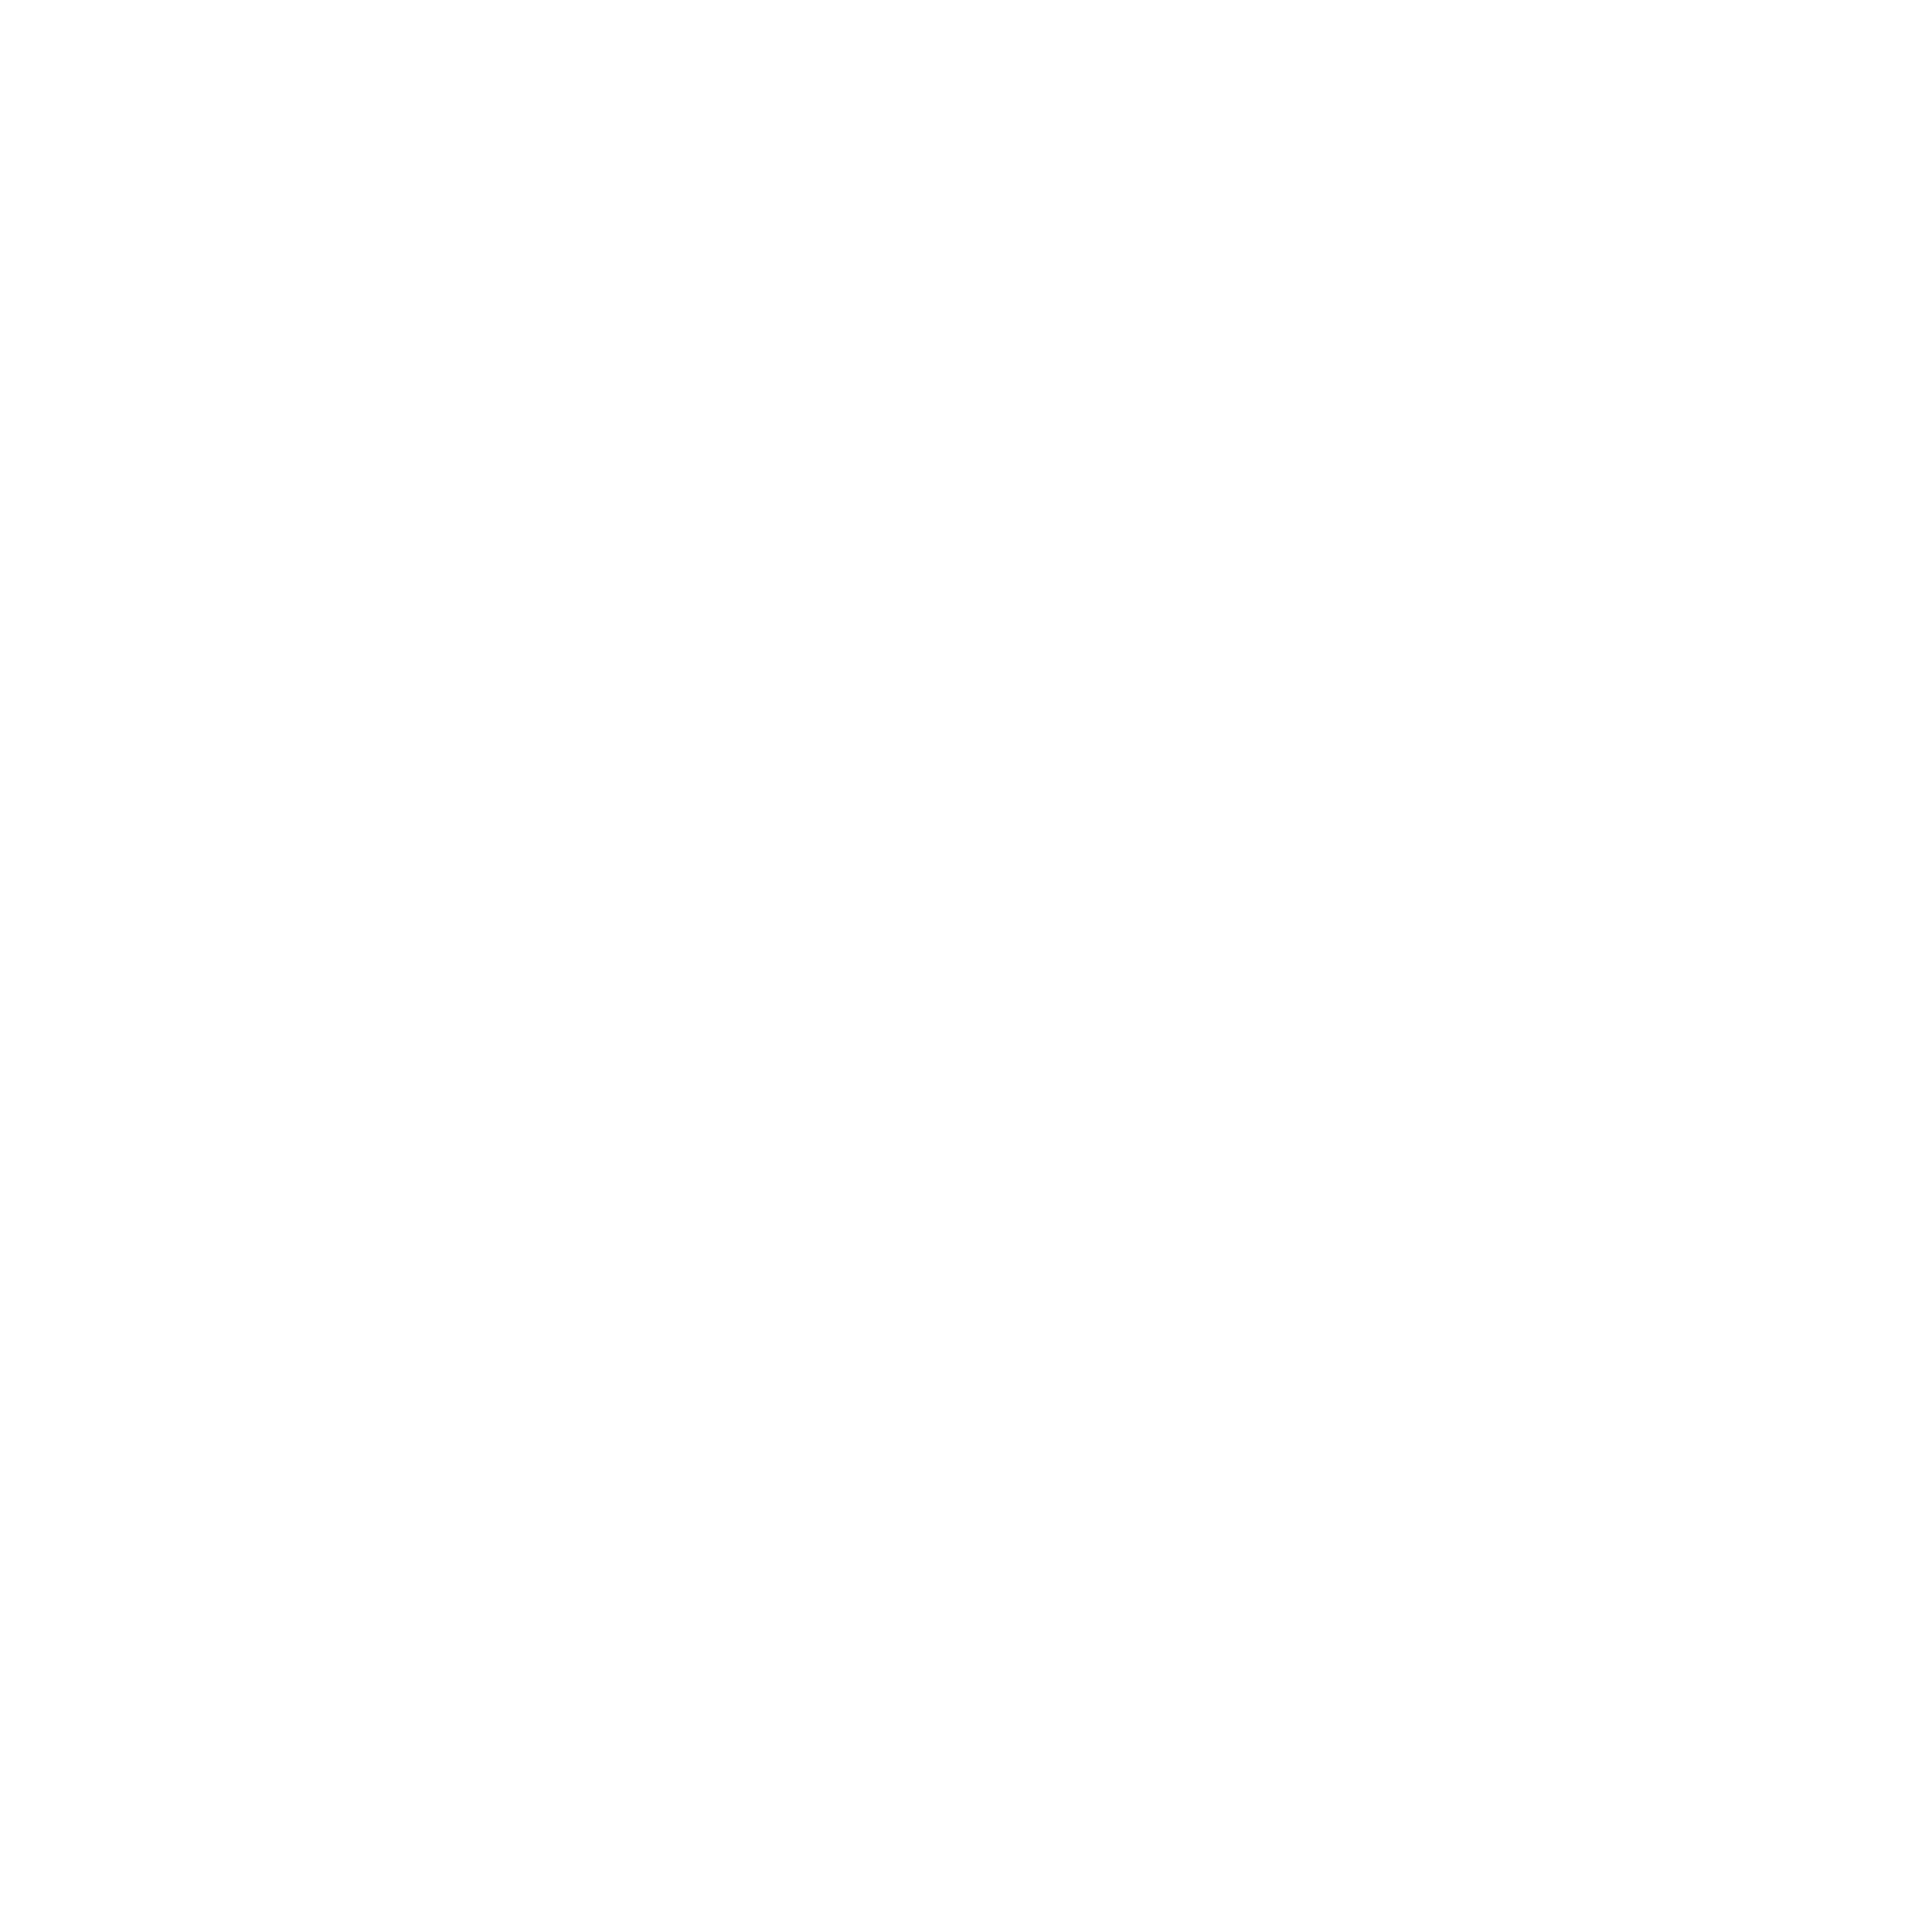 logo circa 2014 - Created for The Welcomers,  a band formed by my good friends.